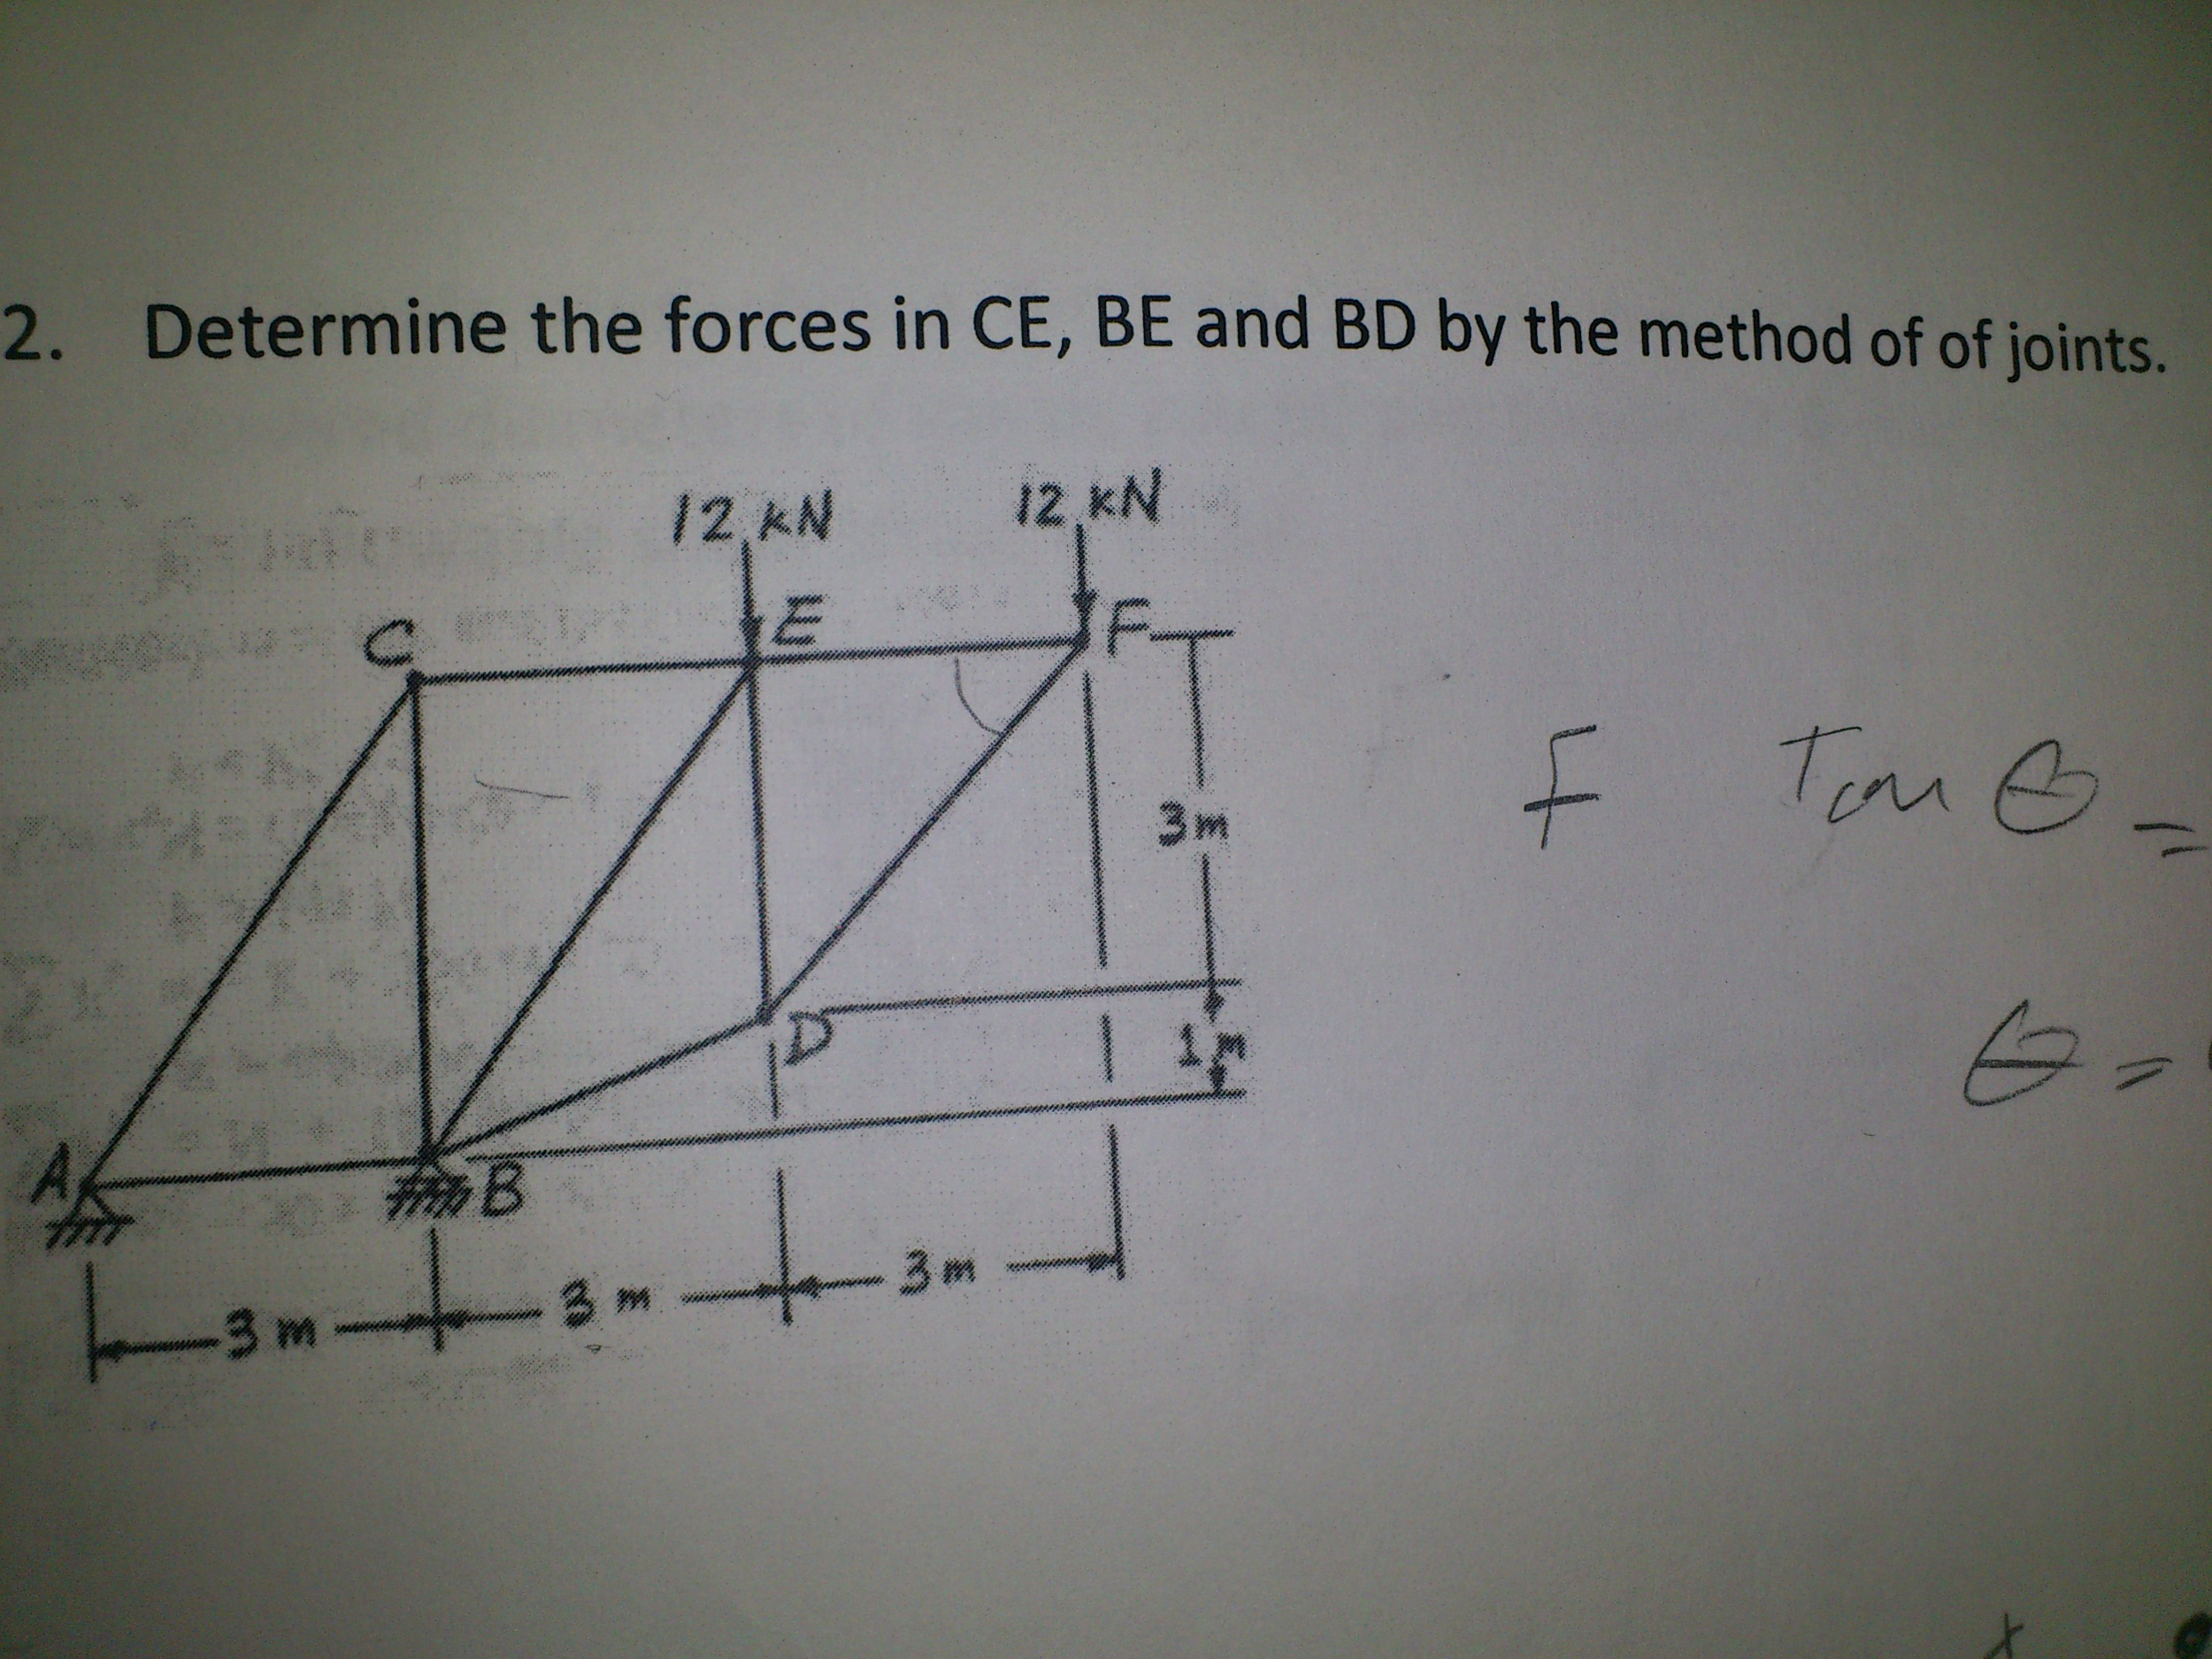 Find the forces in CE, BE, and BD using the method